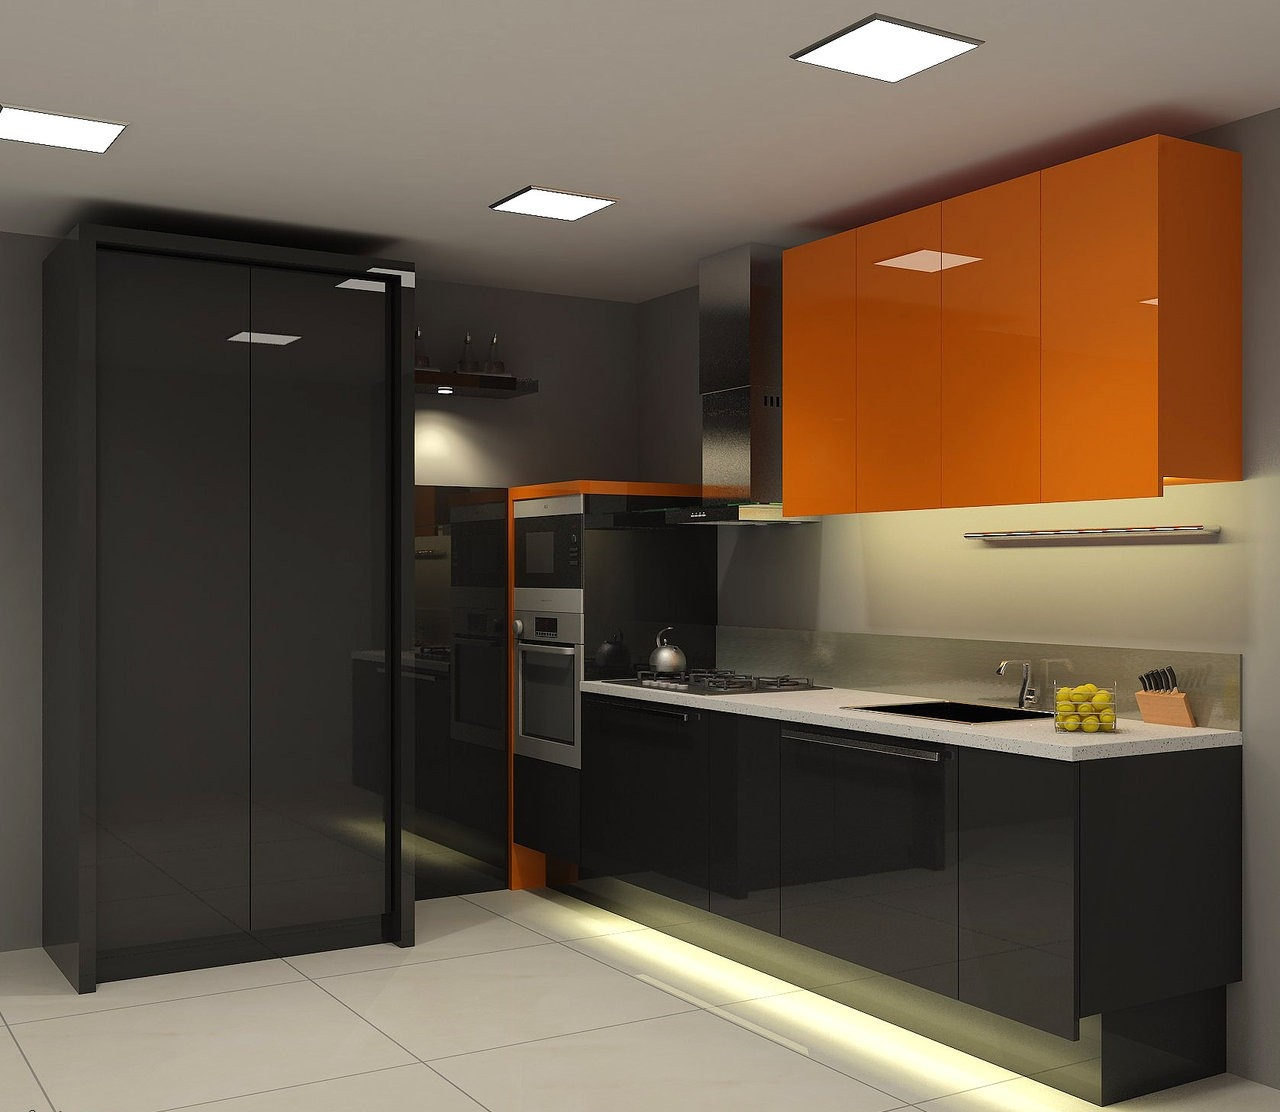 New Home Designs Latest Modern Home Kitchen Cabinet: مطابخ 2014 الفخمة